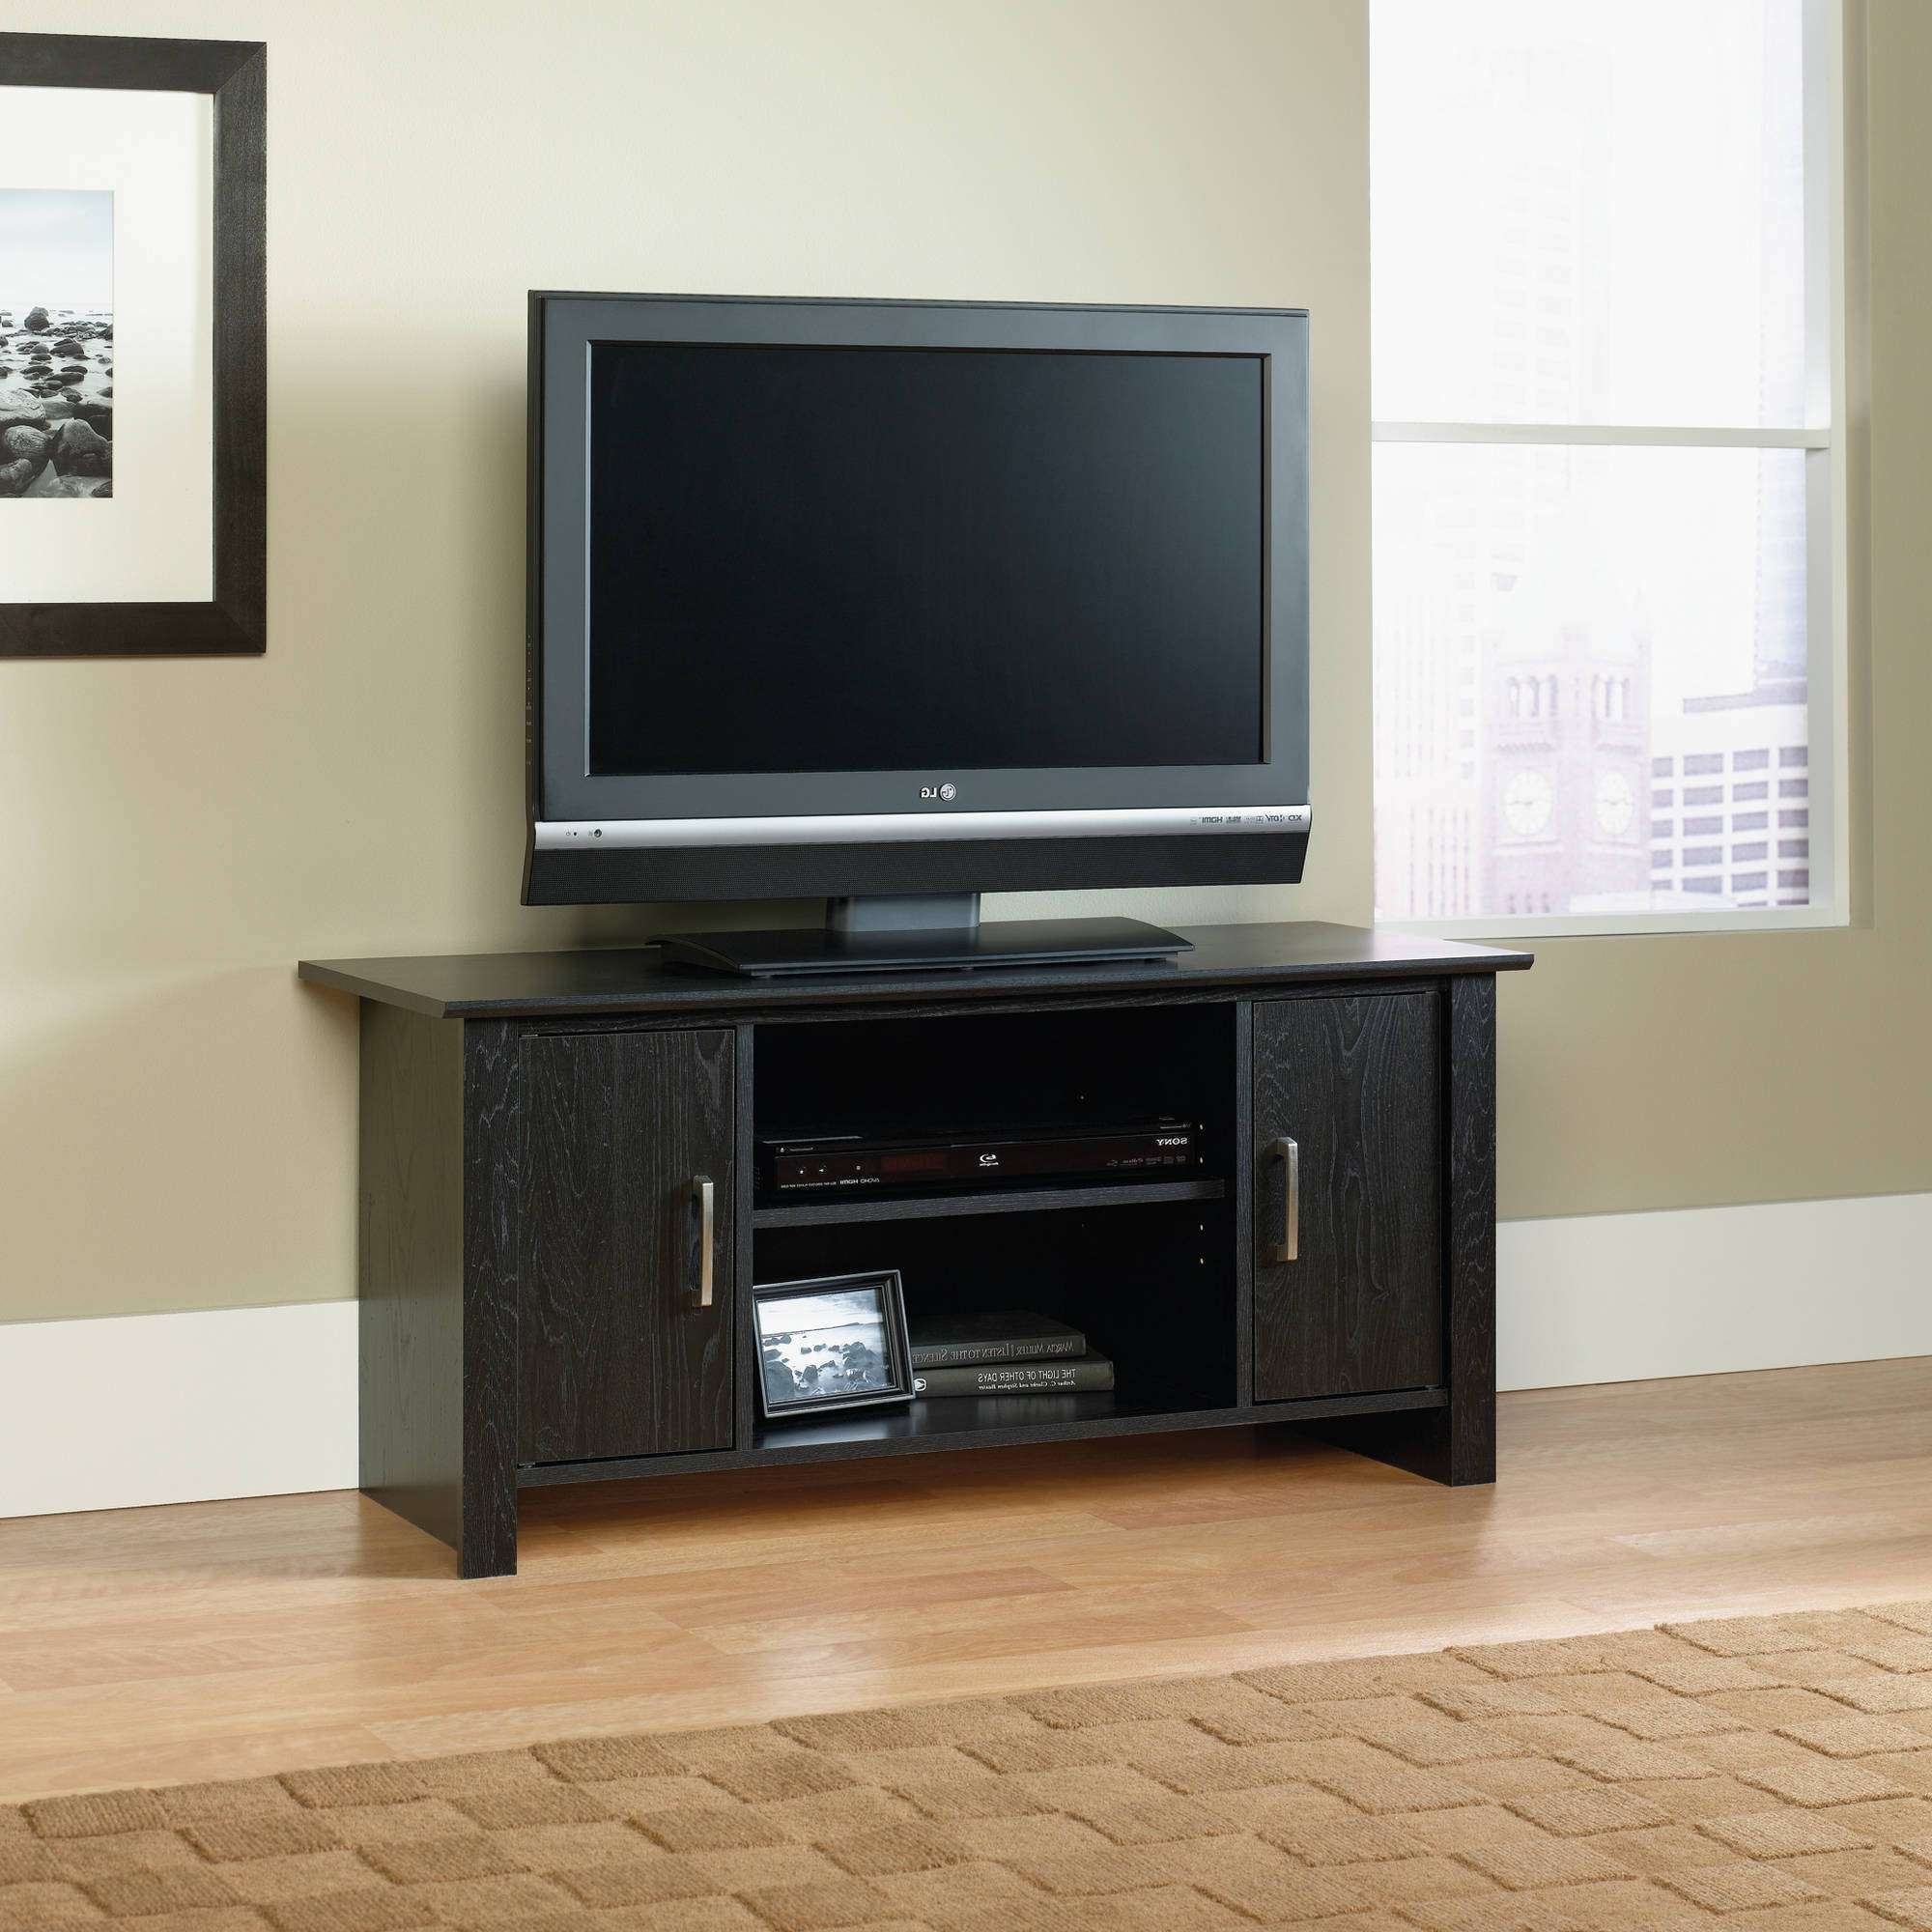 Tv Stands & Entertainment Centers – Walmart Regarding Tv Stands And Cabinets (View 10 of 15)